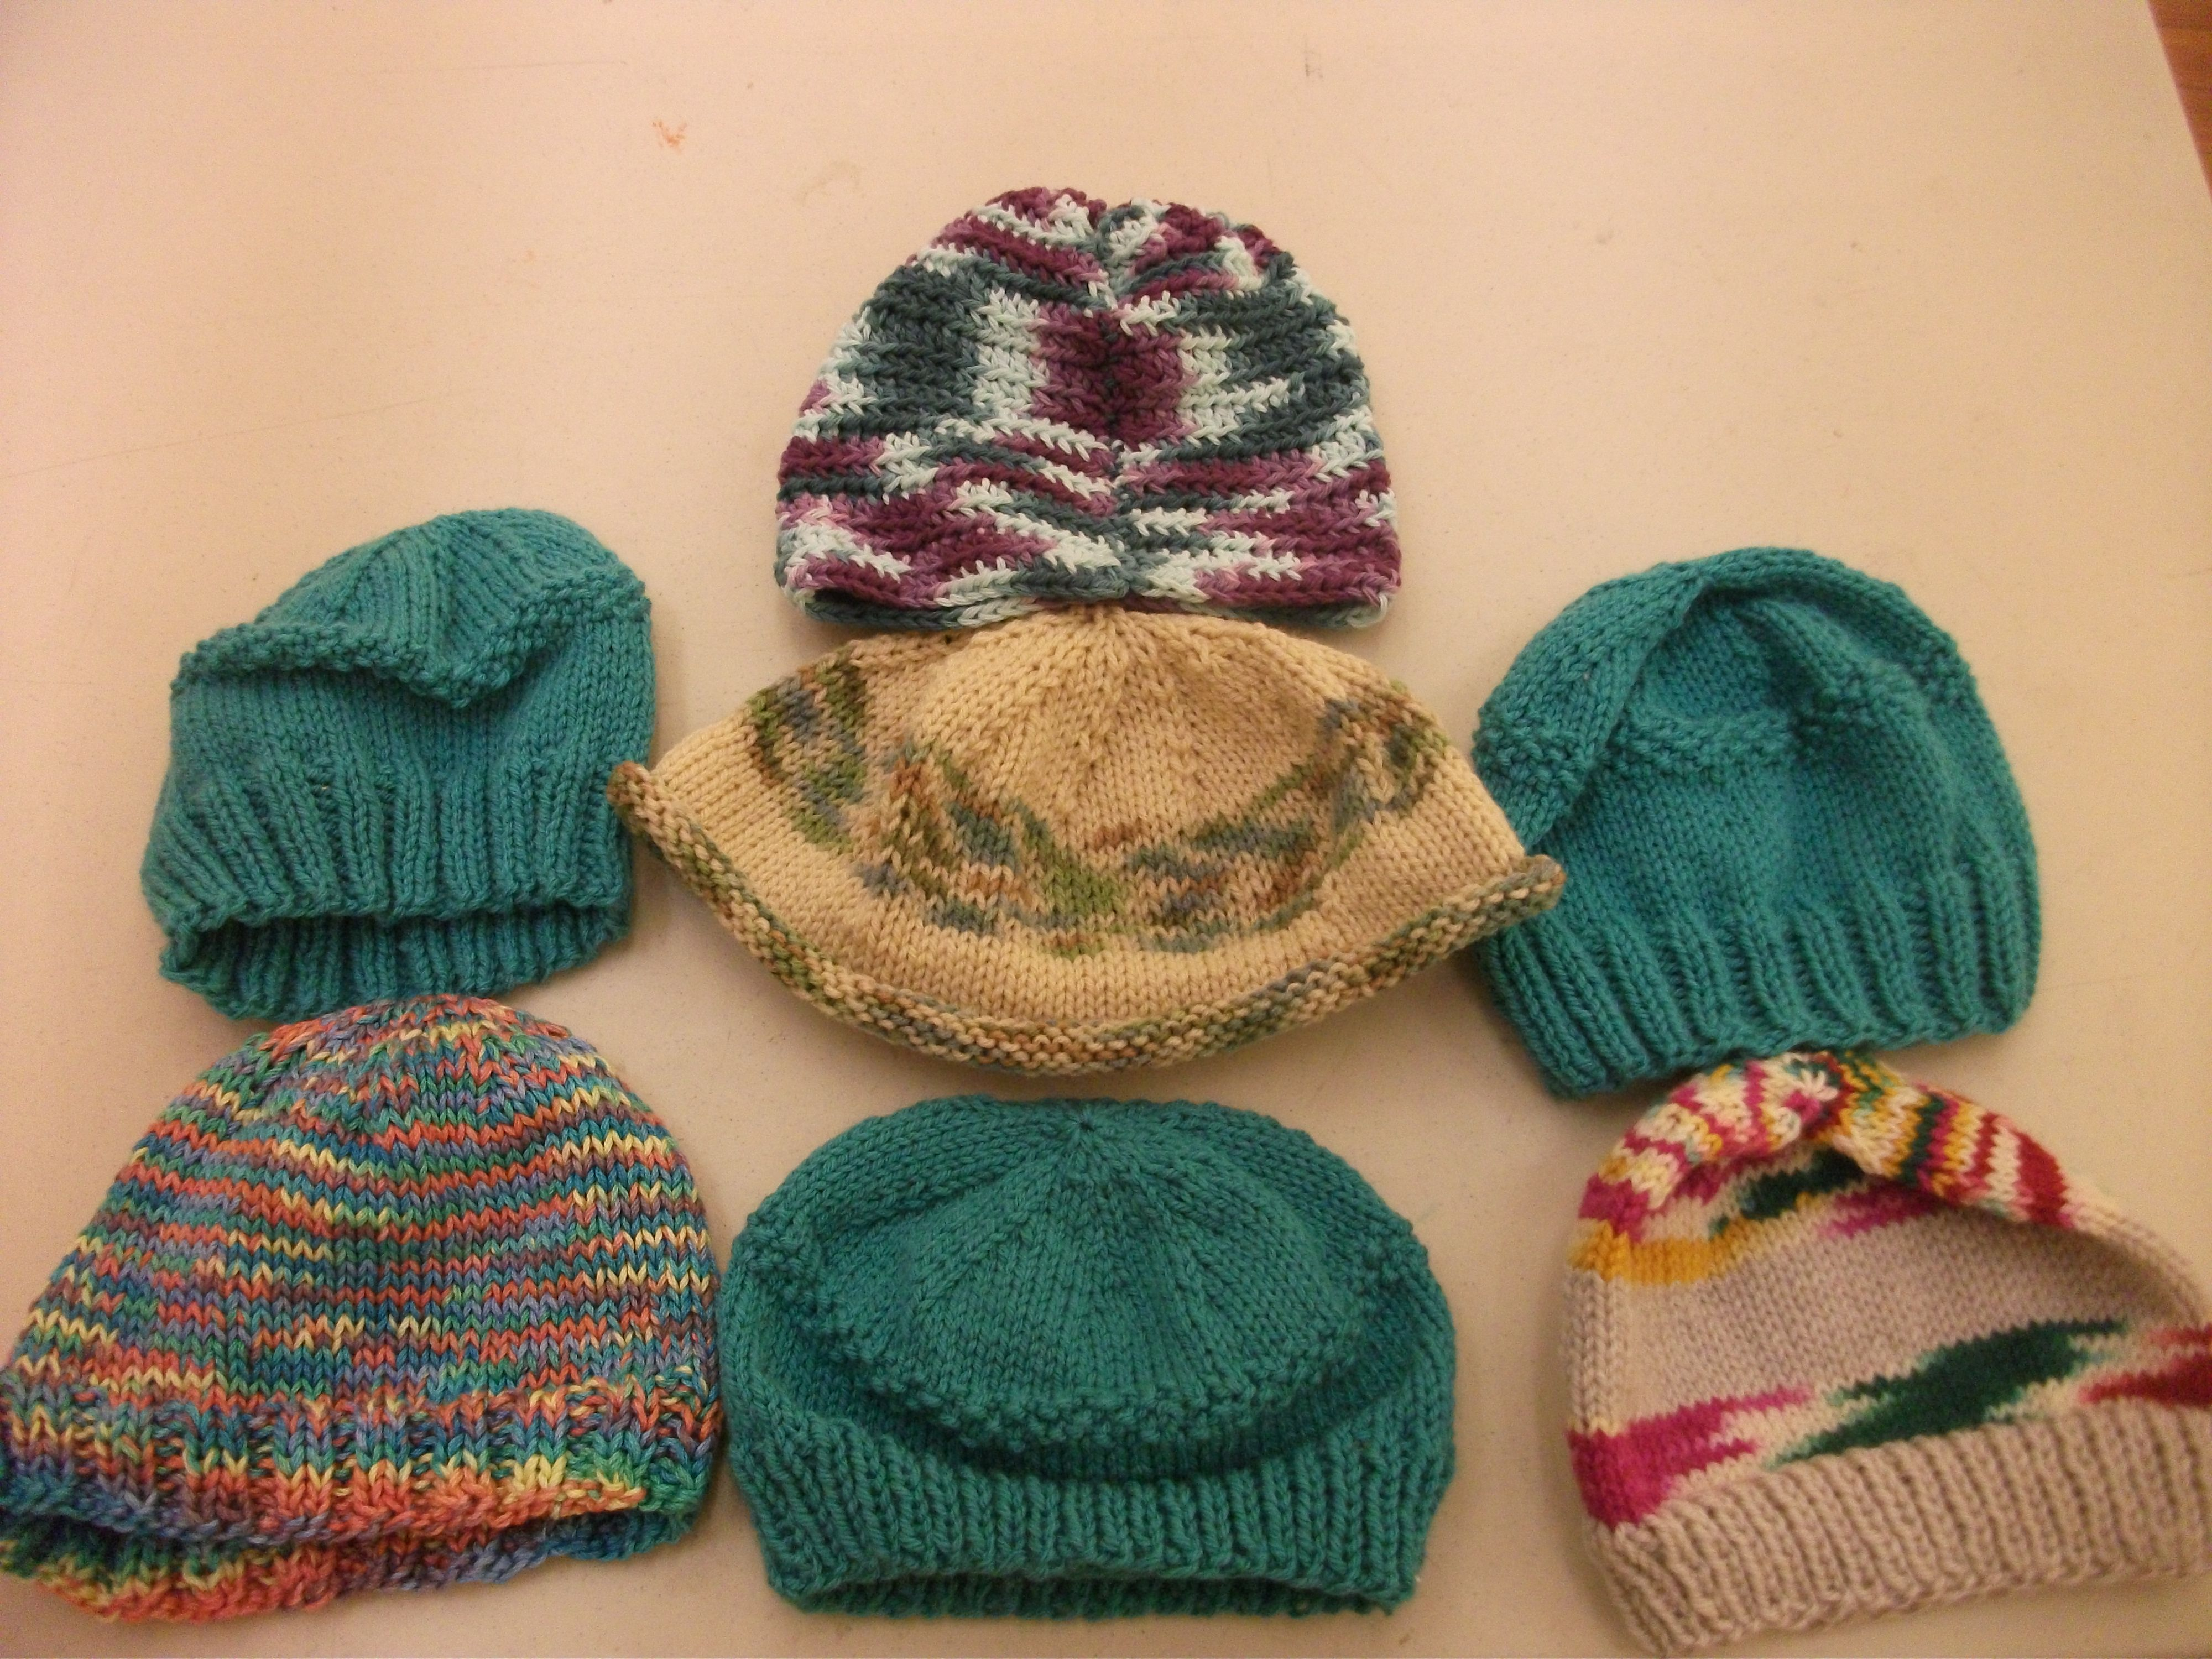 Crocheting Groups : ... by Goleta Charitable Knitting + Crocheting Group on Adult Knitted